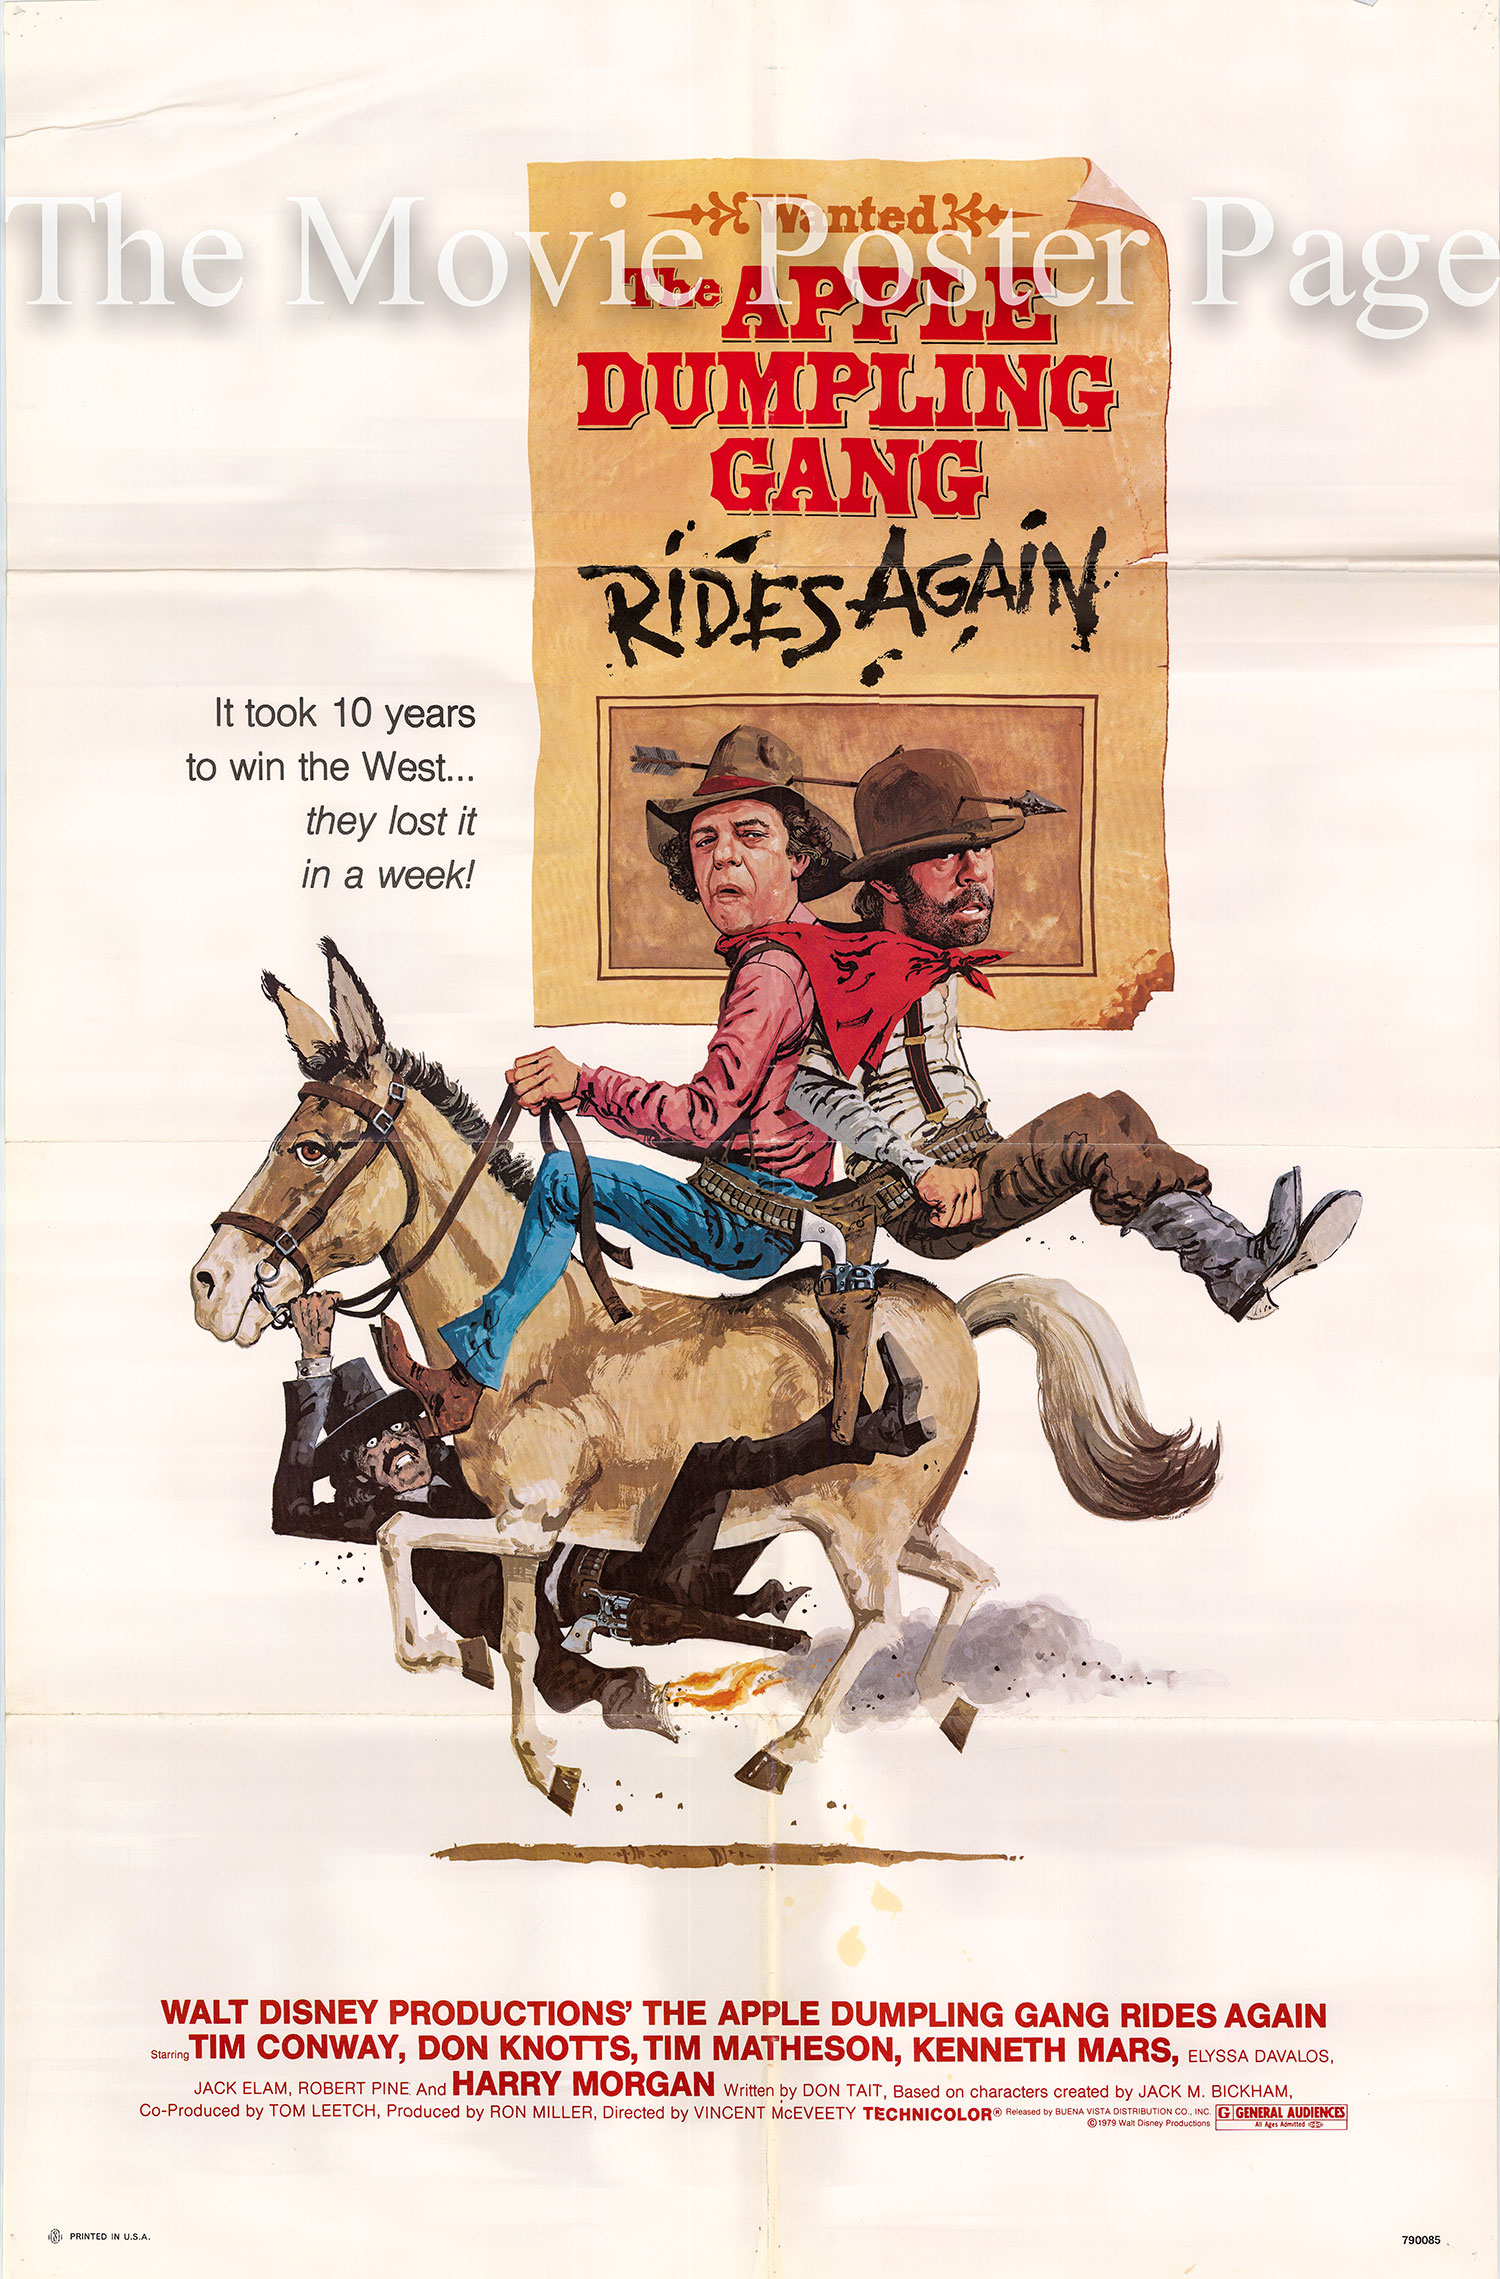 Pictured is a US one-sheet poster for the 1979 Vincent McEveety film The Apple Dumpling Gang Rides Again starring Tim Conway and Don Knotts.